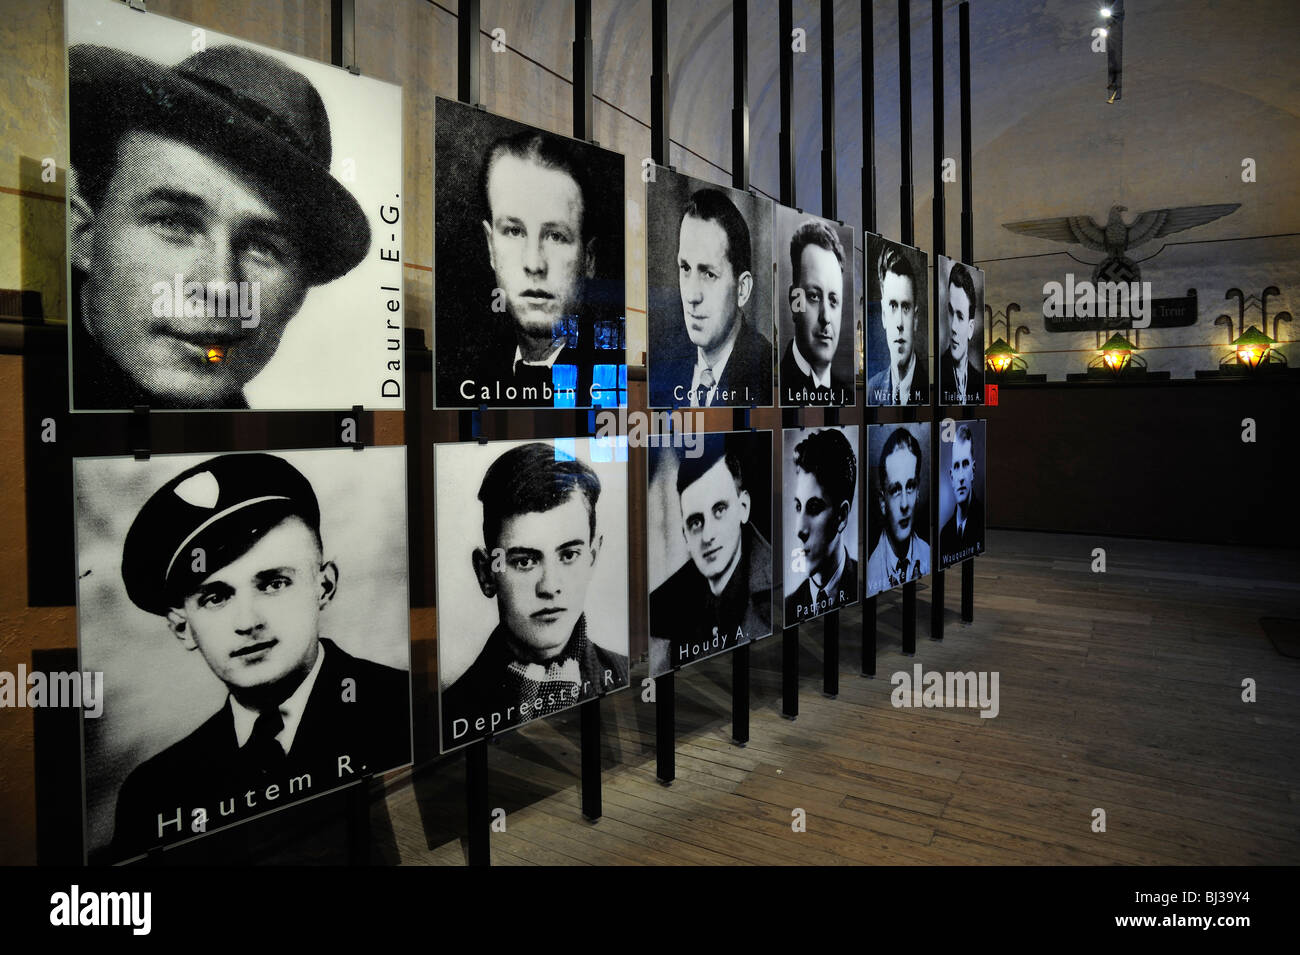 Pictures of WW2 political prisoners at Fort Breendonk, Second World War Two concentration camp in Belgium - Stock Image